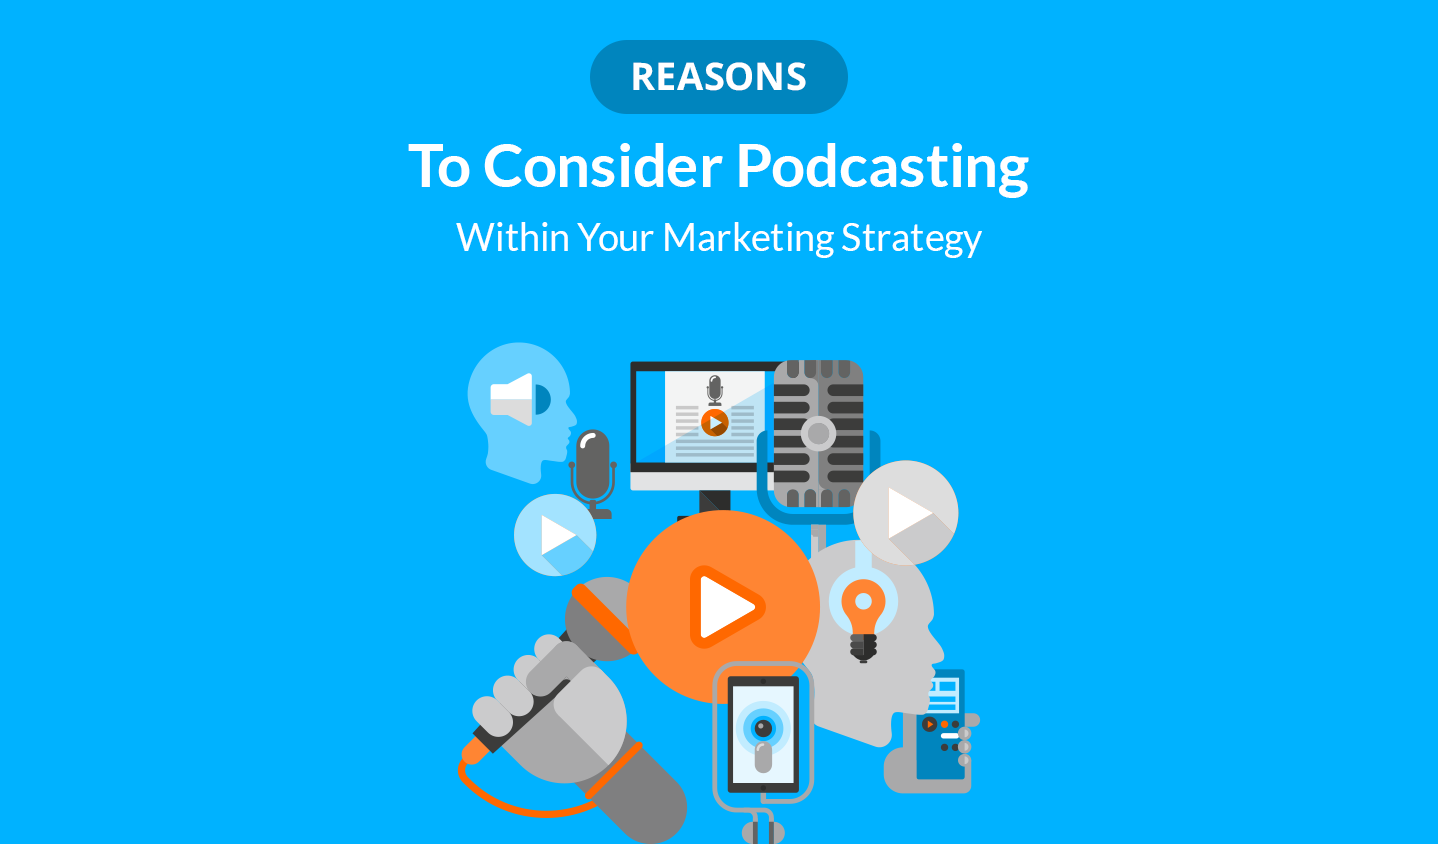 6 Reasons Why You Should Consider Podcasting Within Your Marketing Strategy